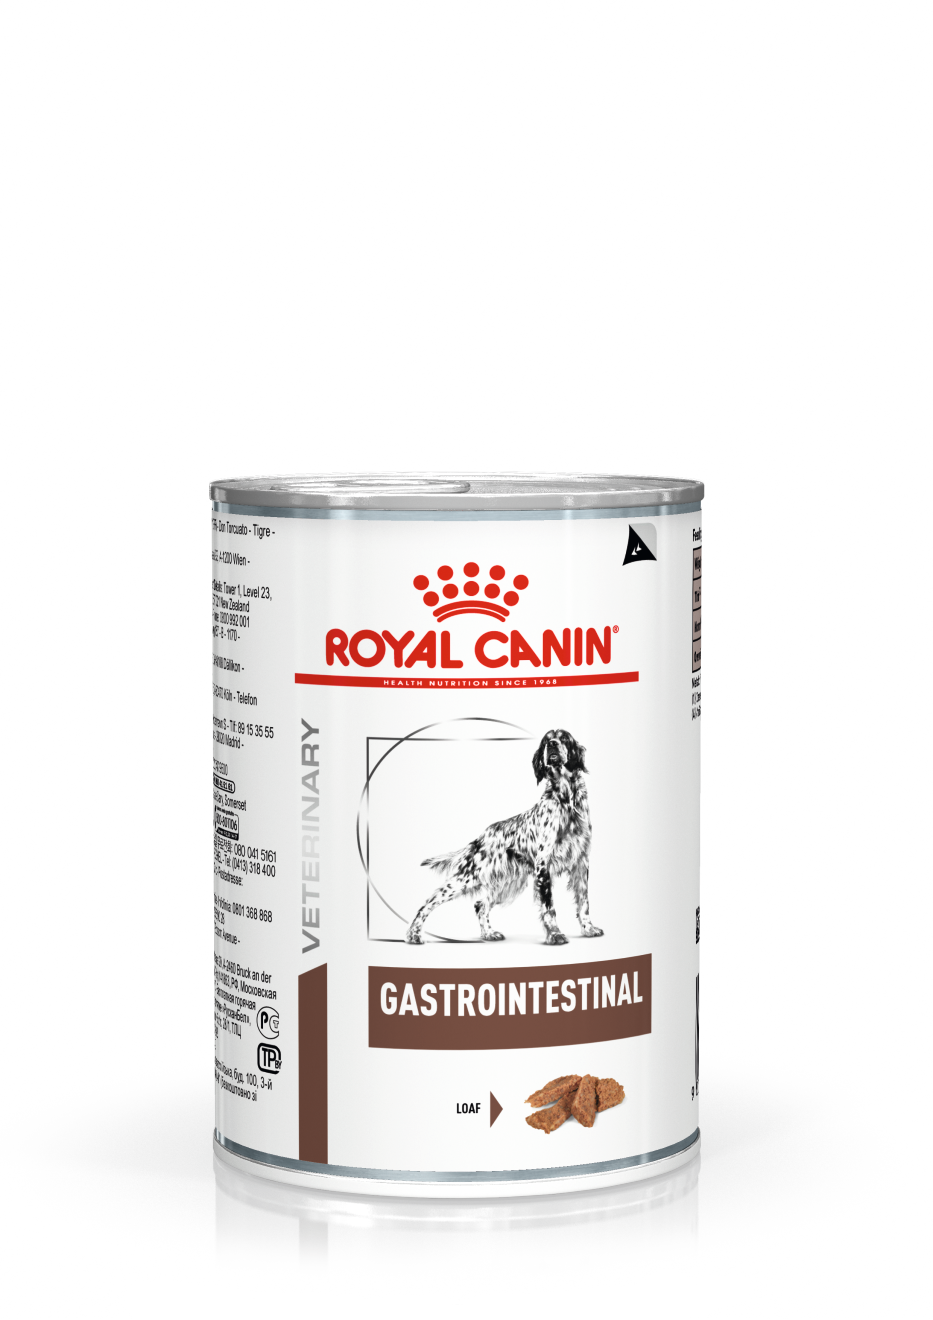 Royal Canin - Gastrointestinal Dog